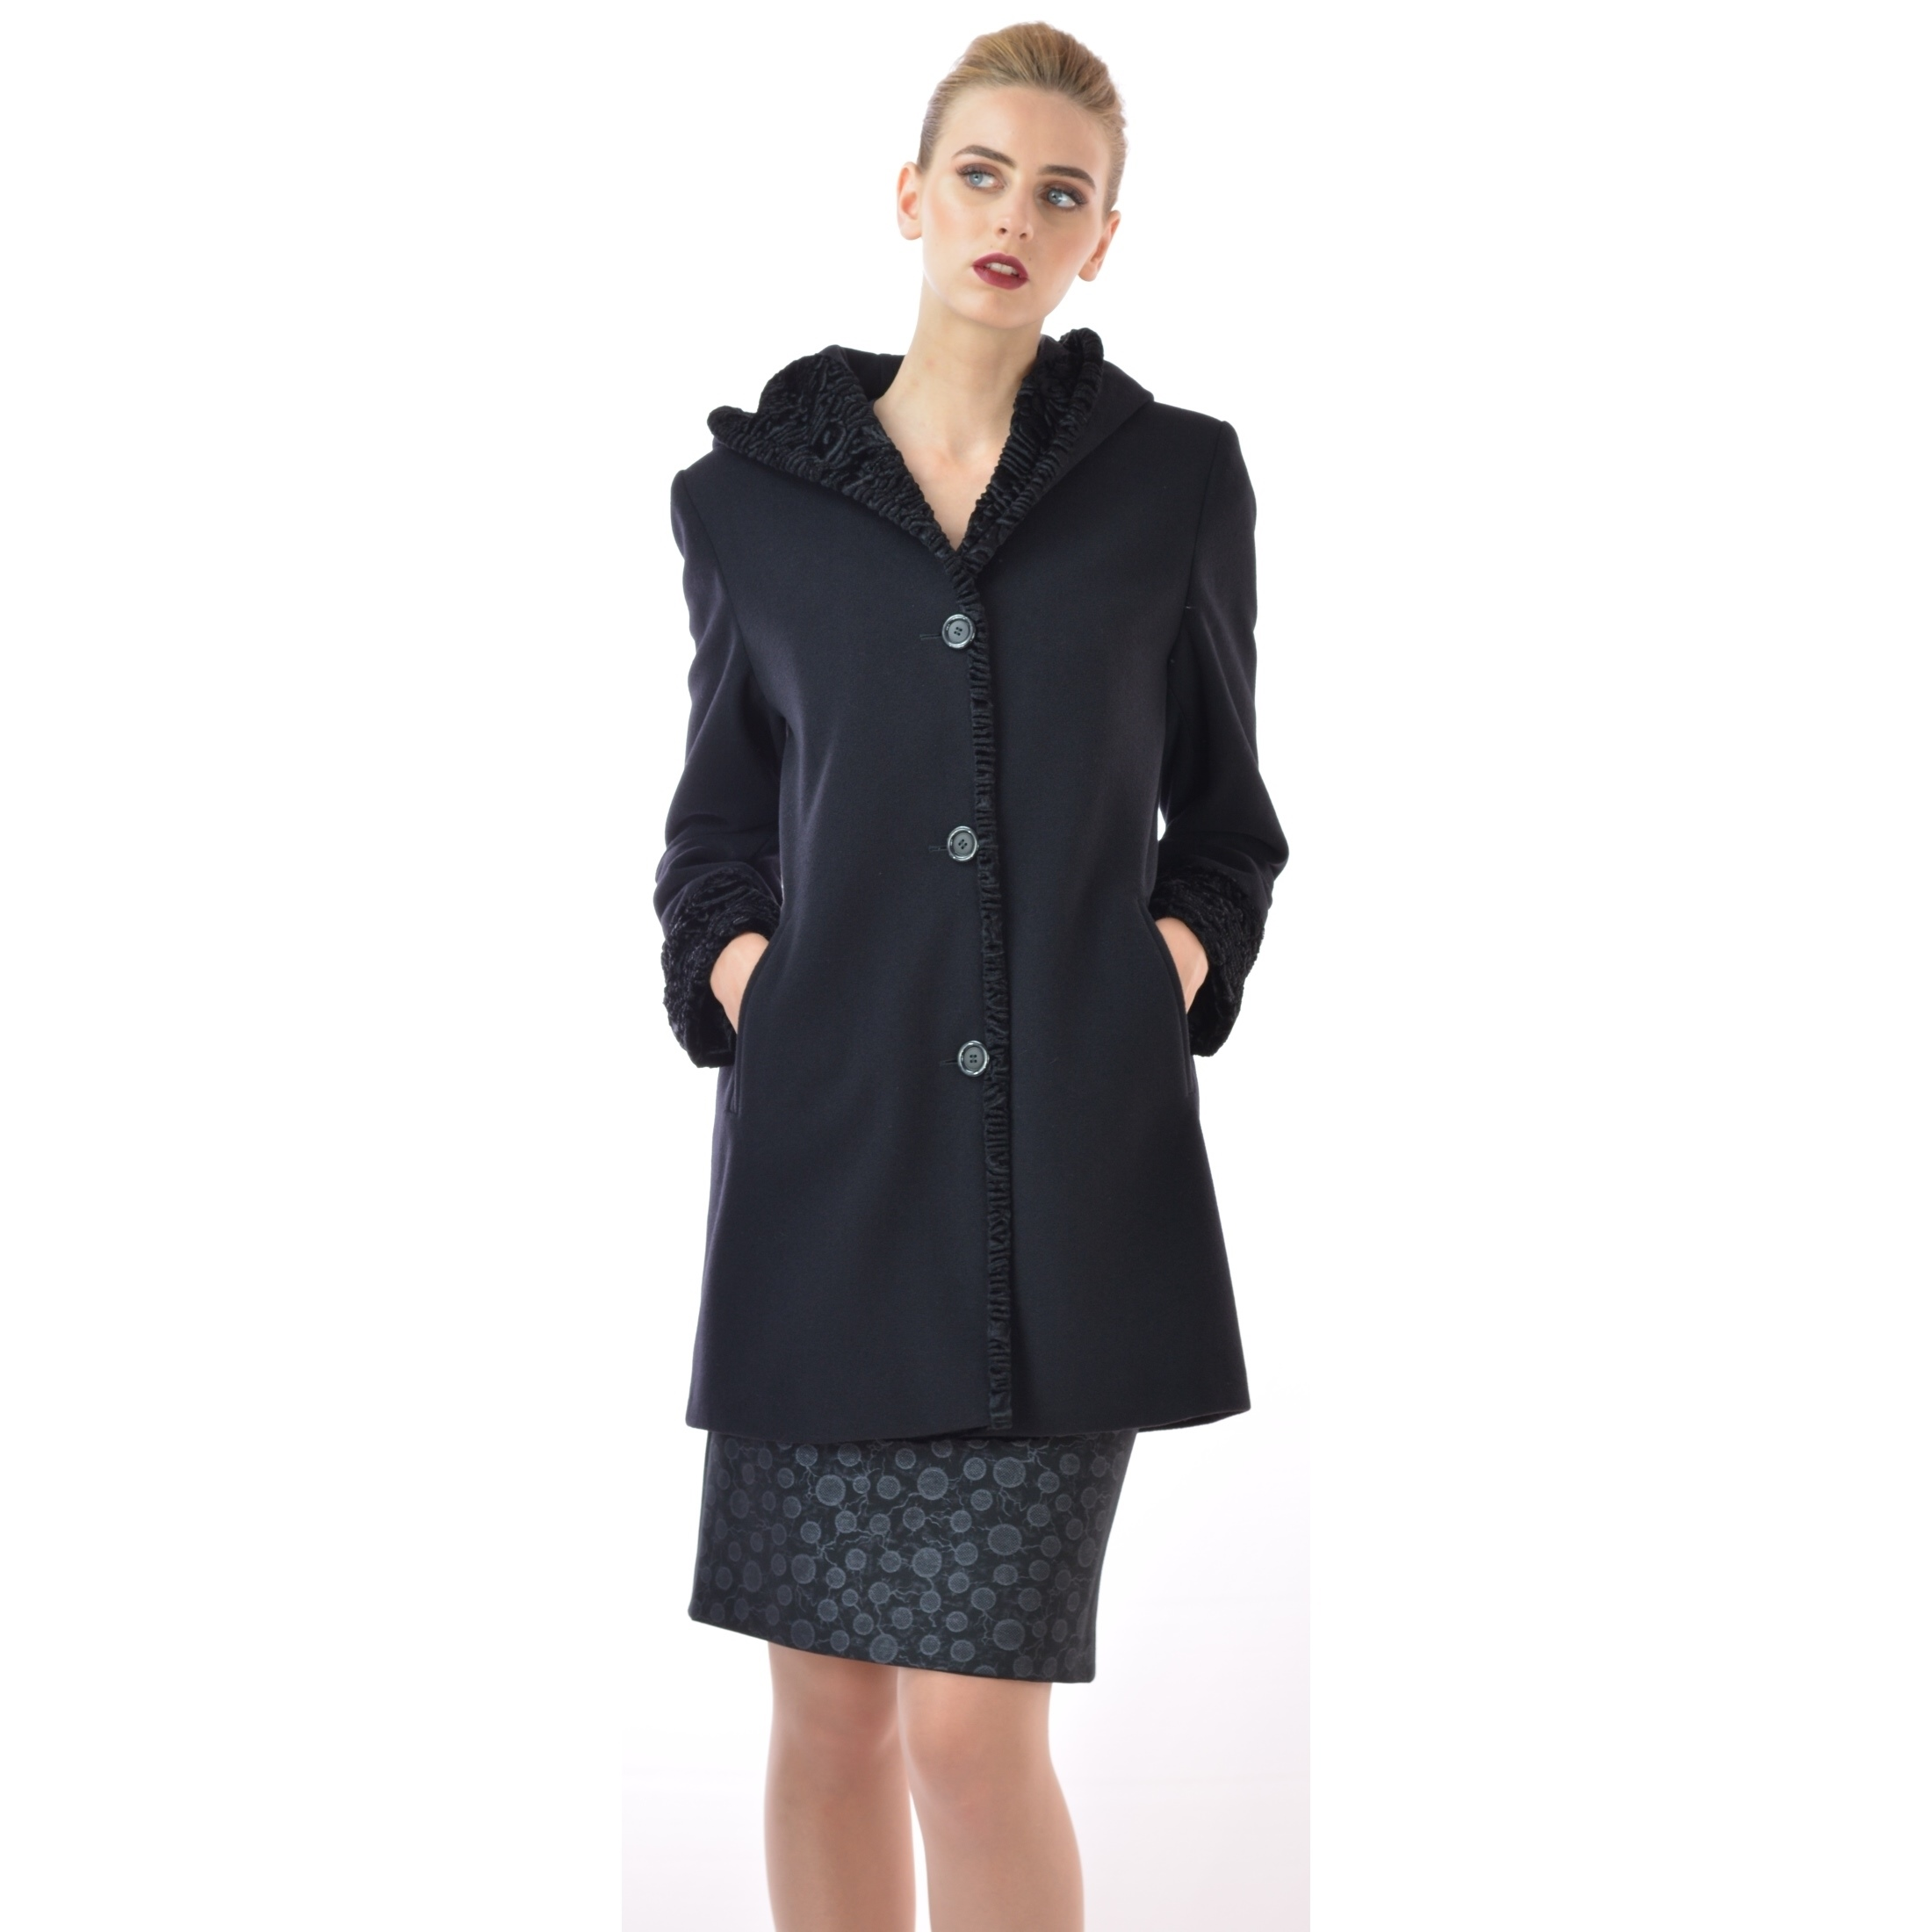 Women's black coat.